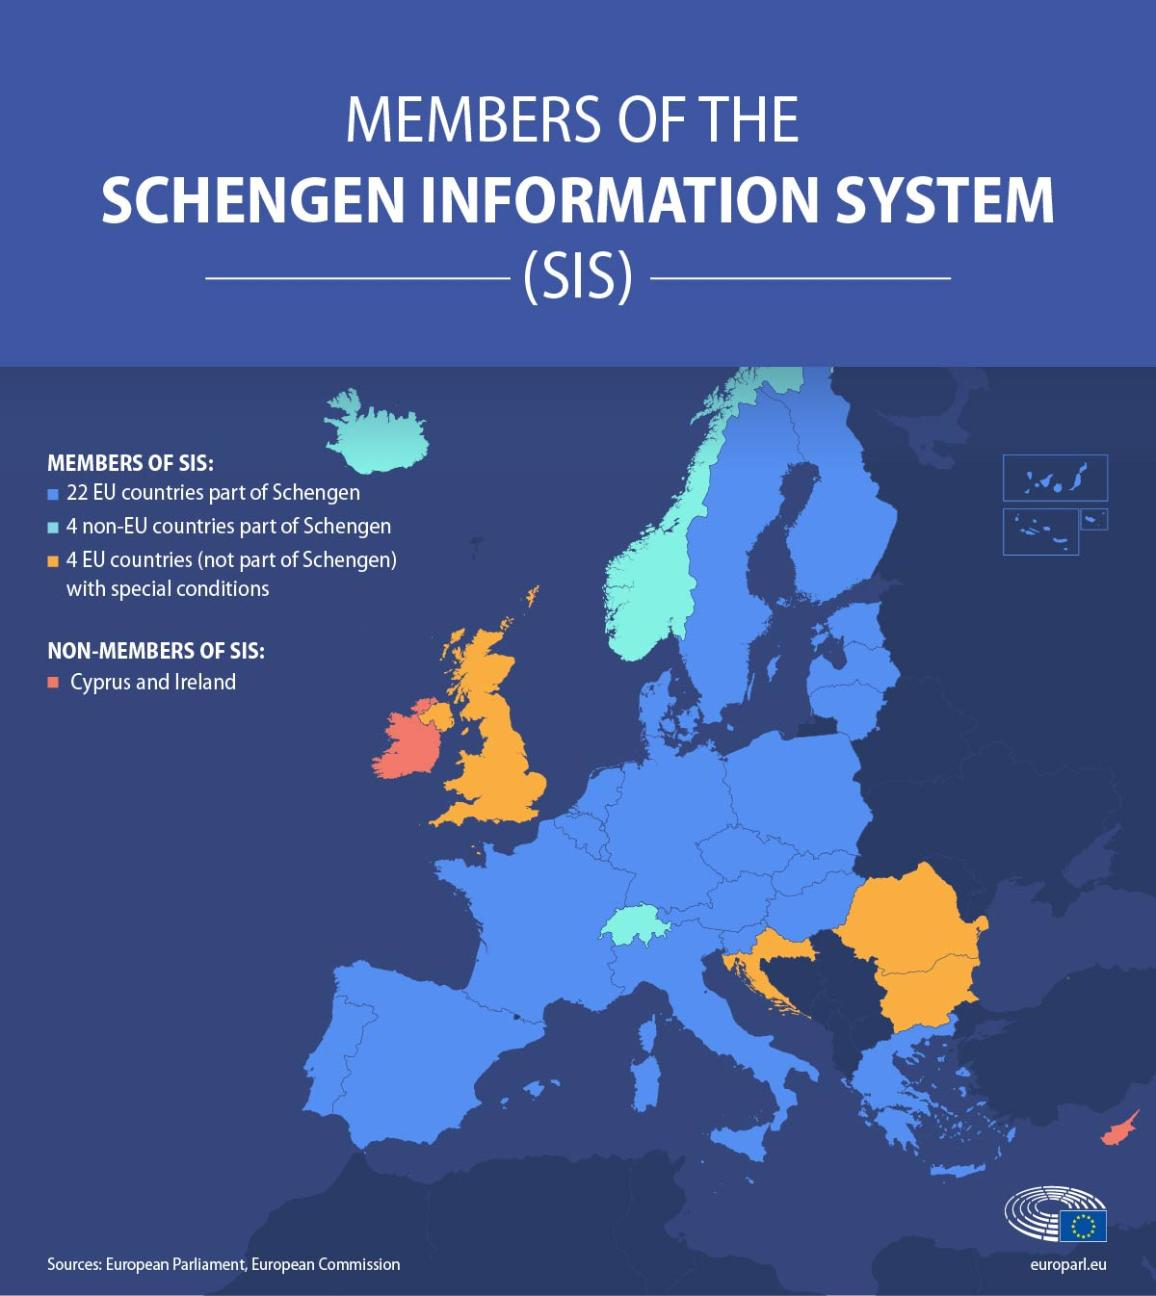 infographie illustration on the Schengen Information System (SIS)